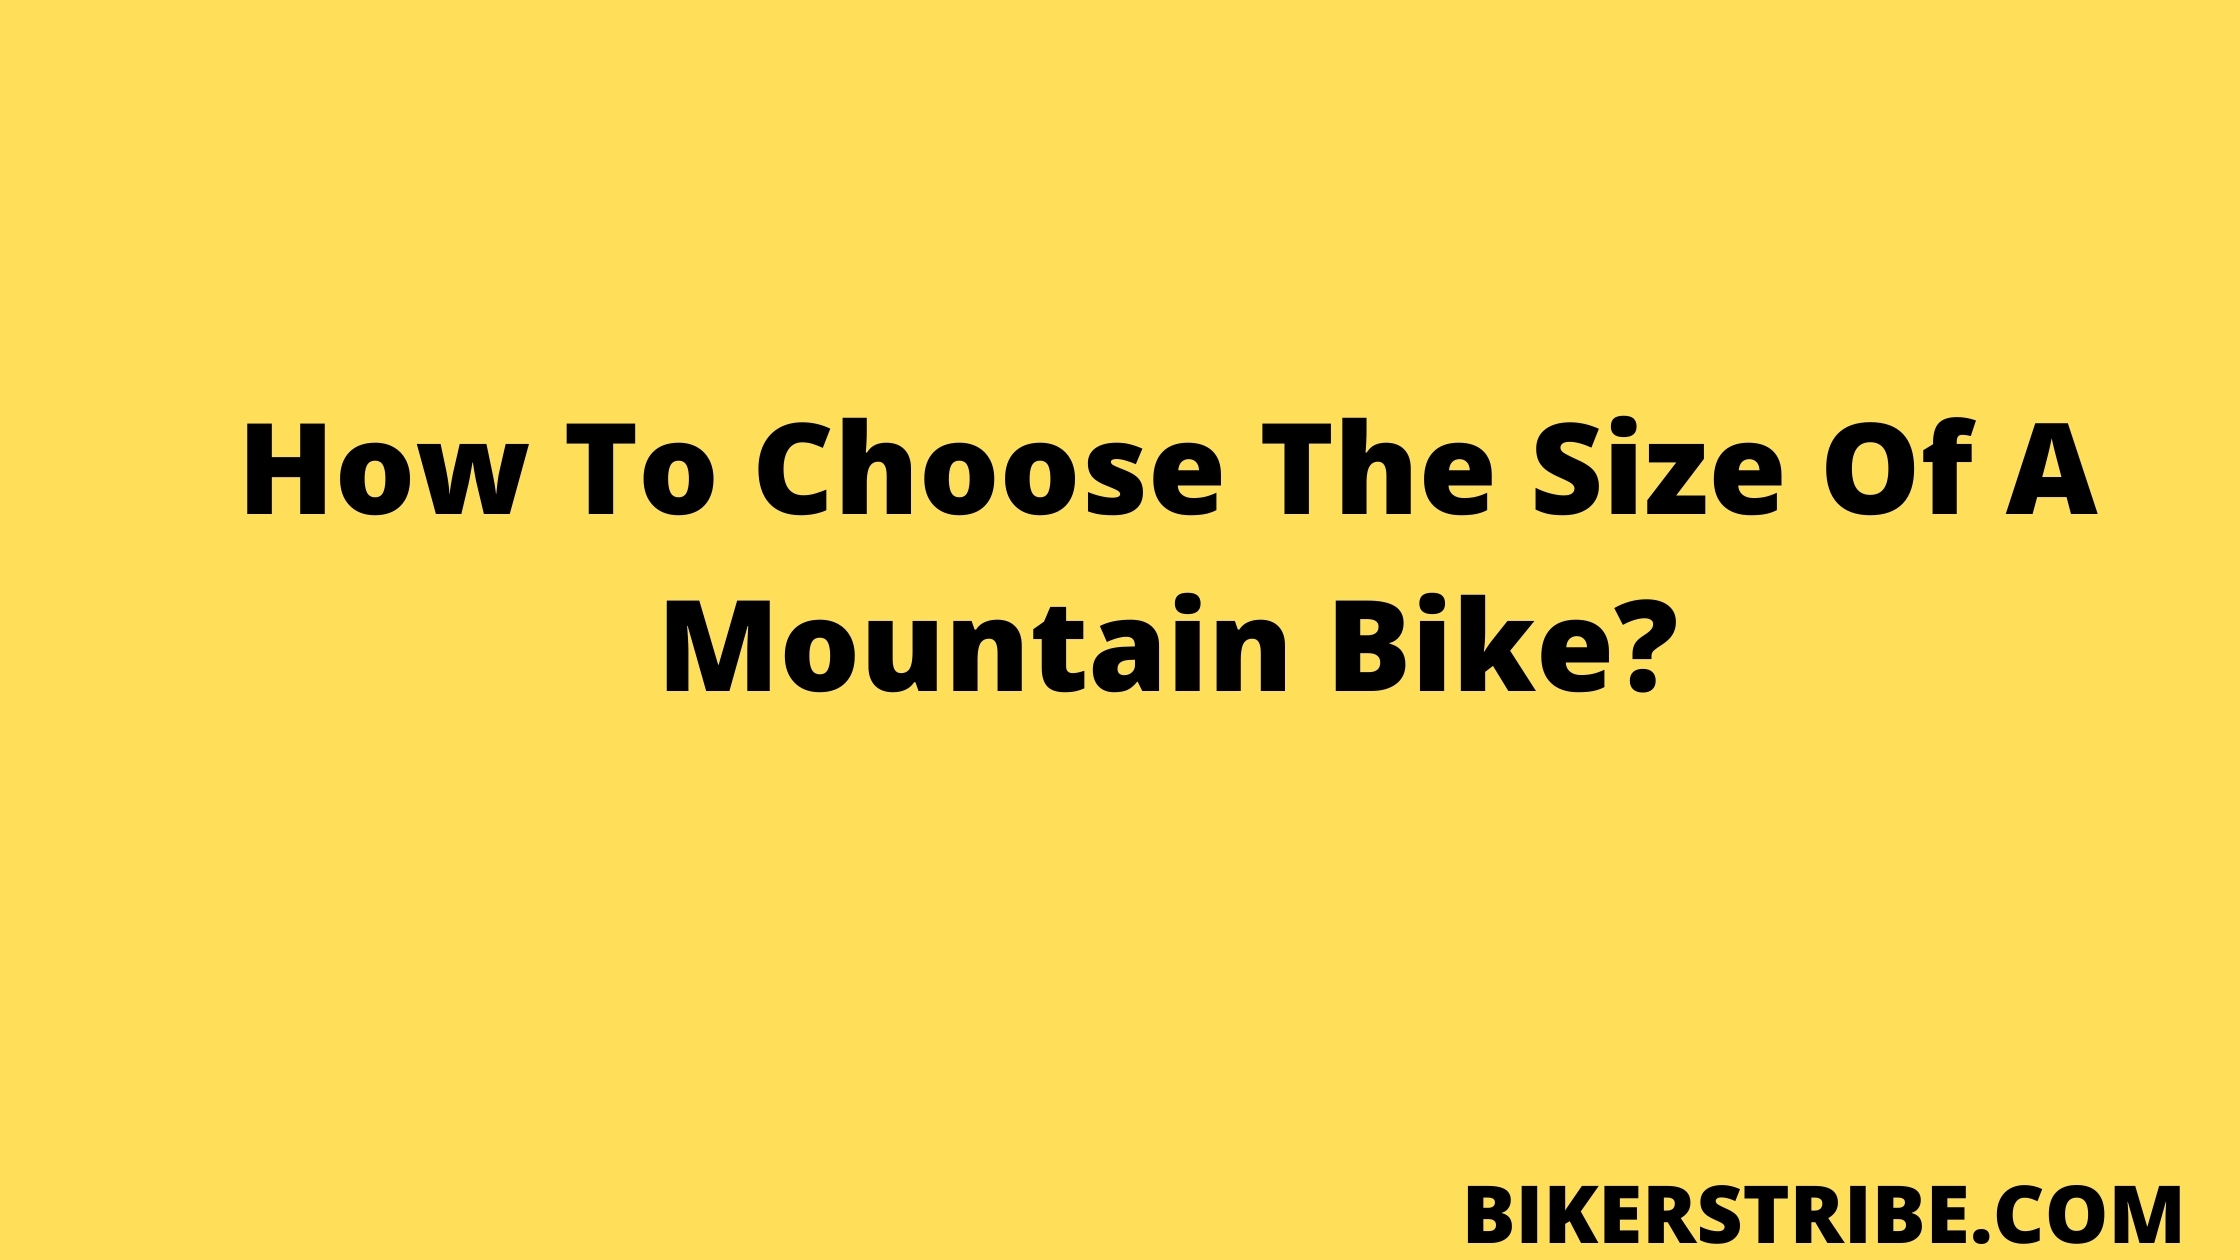 How To Choose The Size Of A Mountain Bike